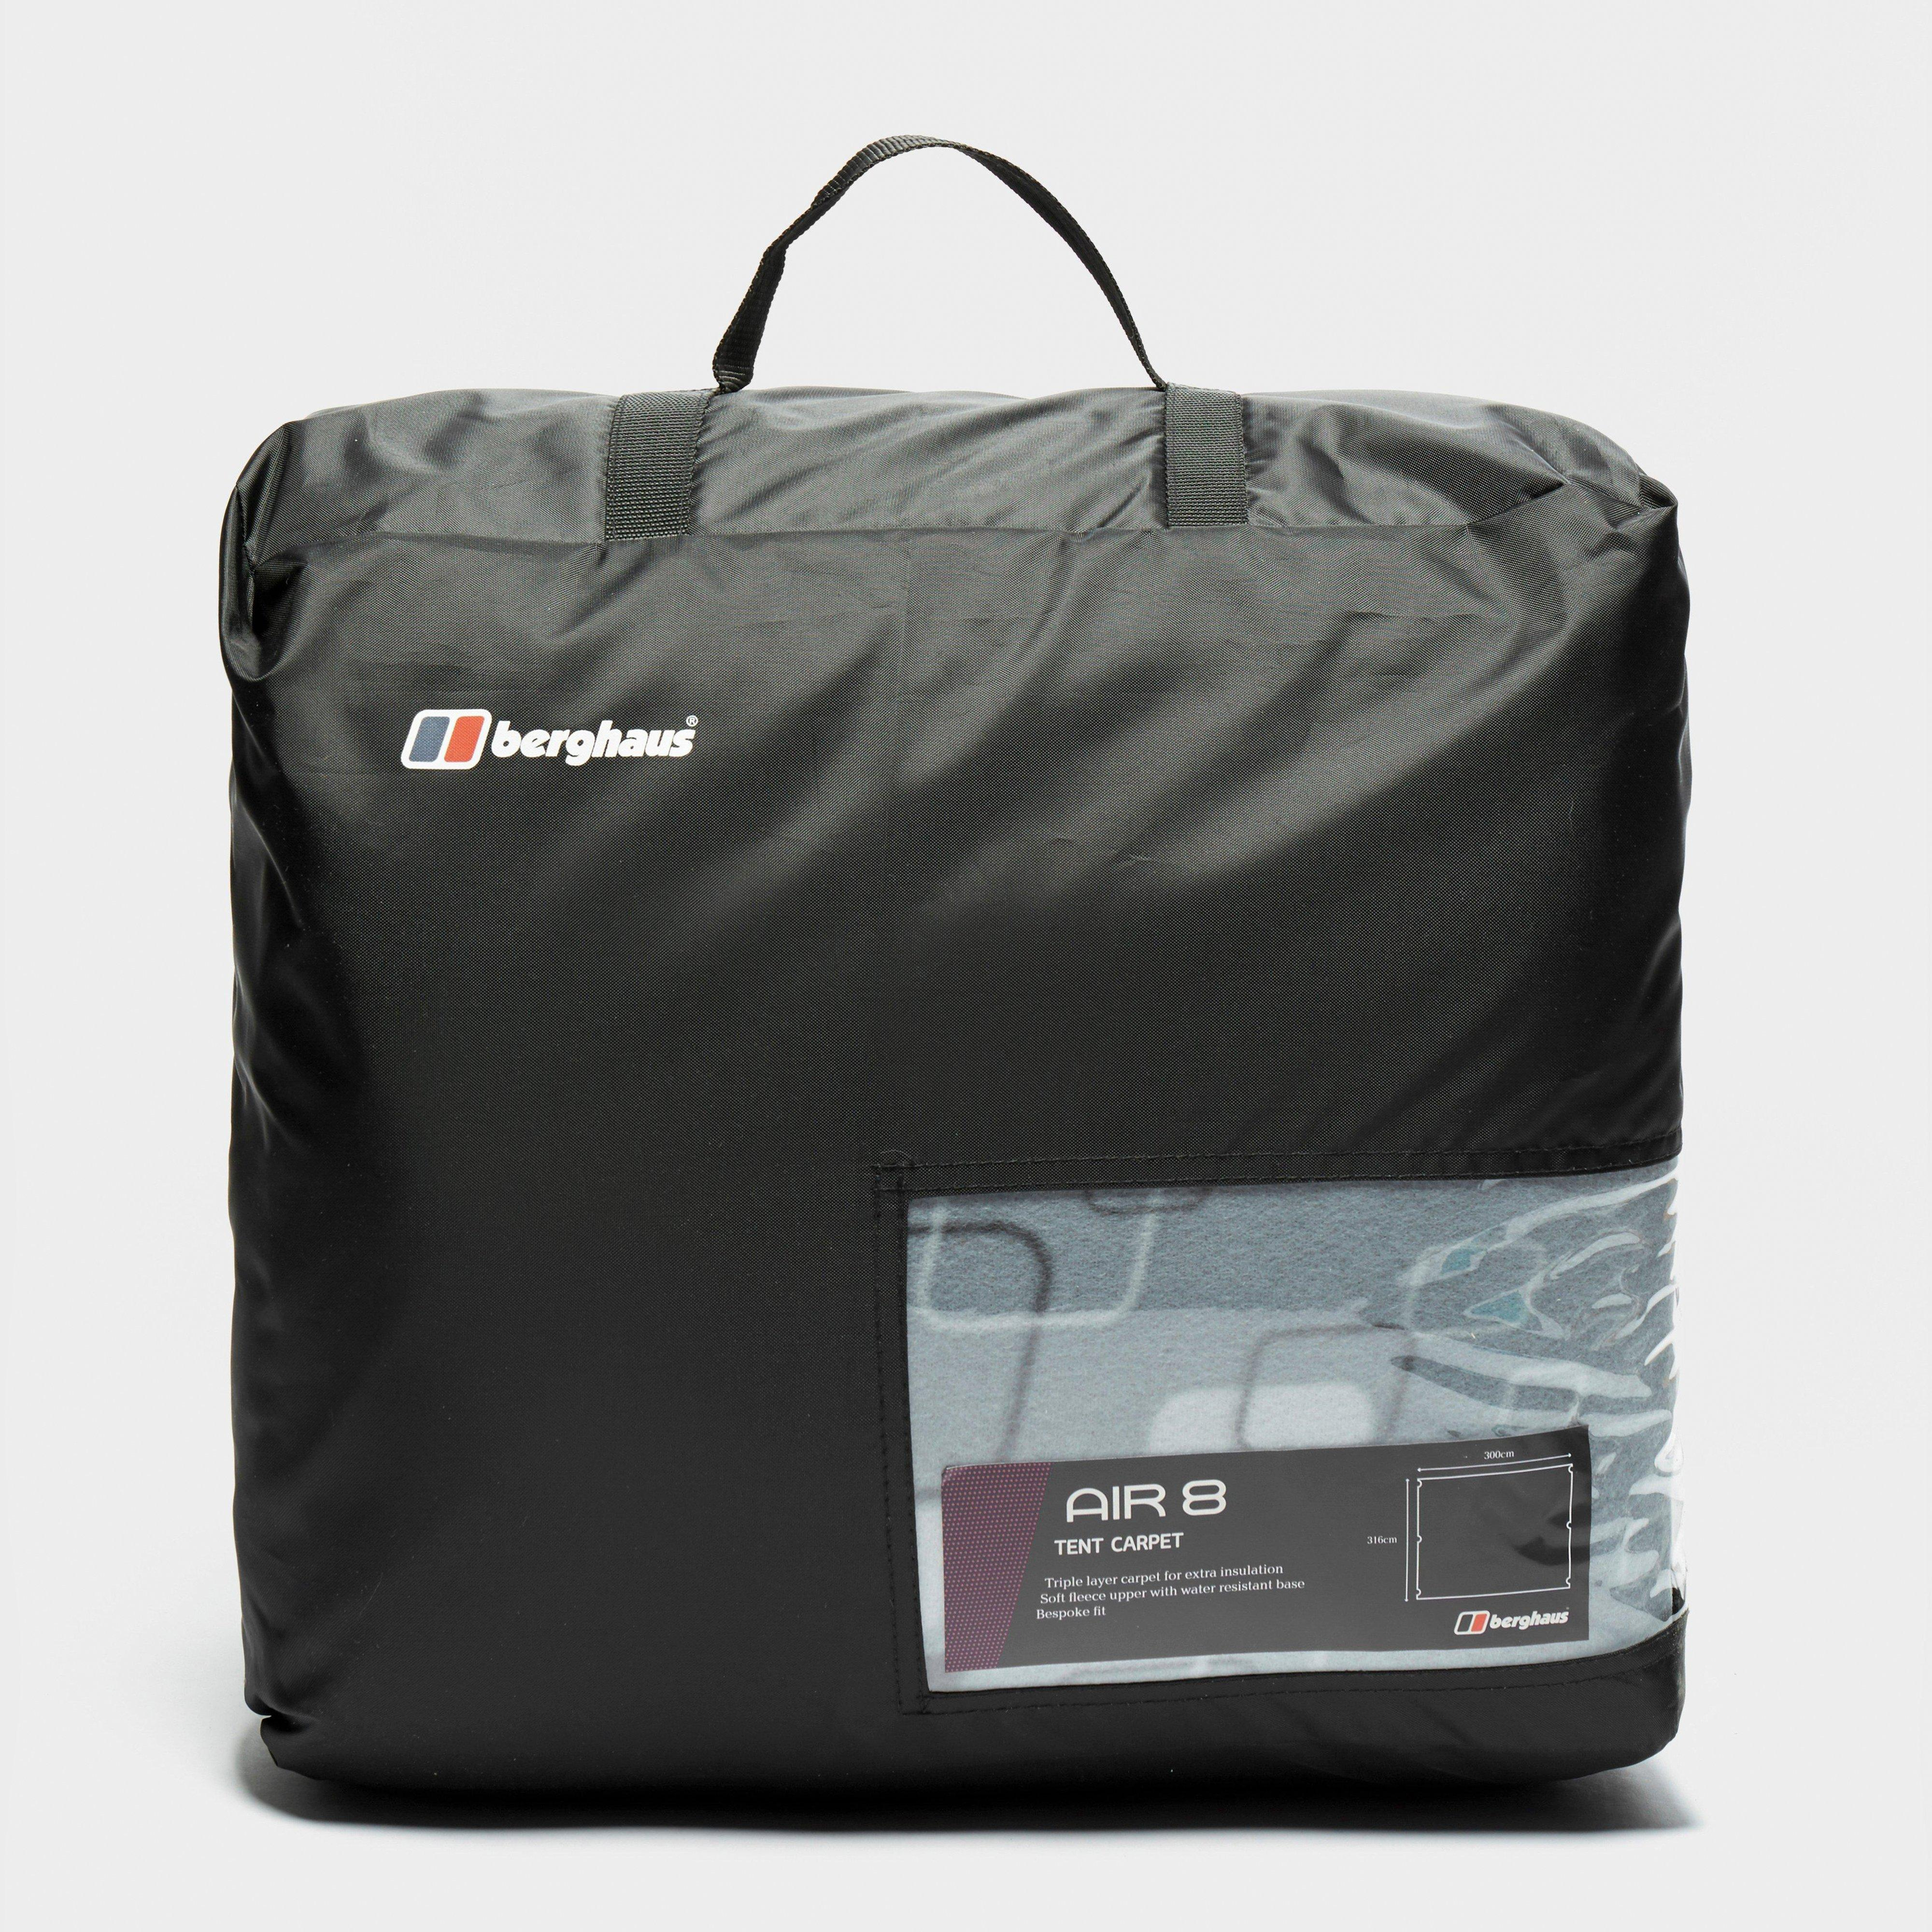 Berghaus Air 8 Carpet